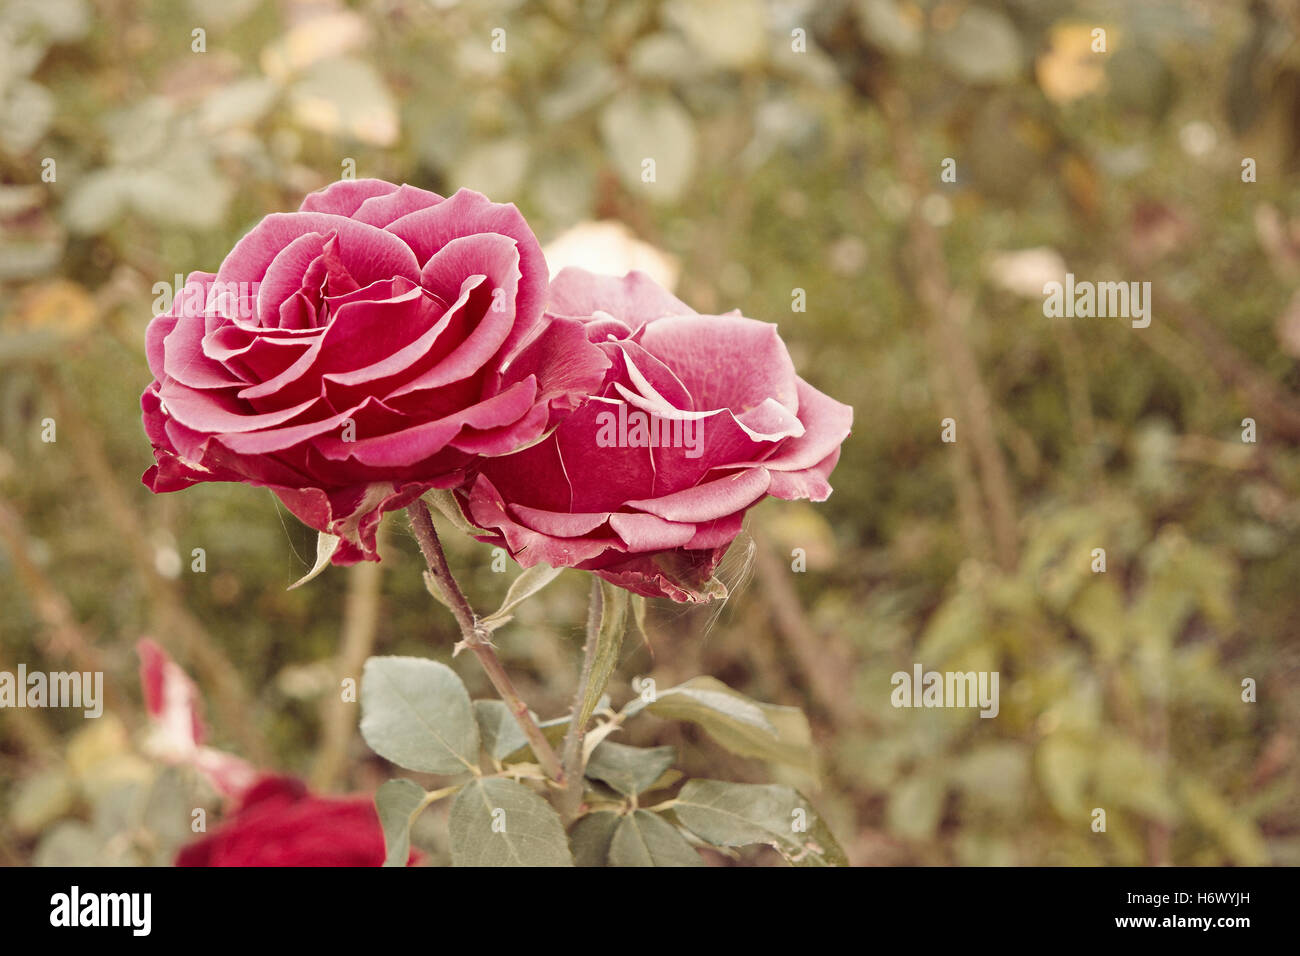 dying rose bush stockfotos dying rose bush bilder alamy. Black Bedroom Furniture Sets. Home Design Ideas